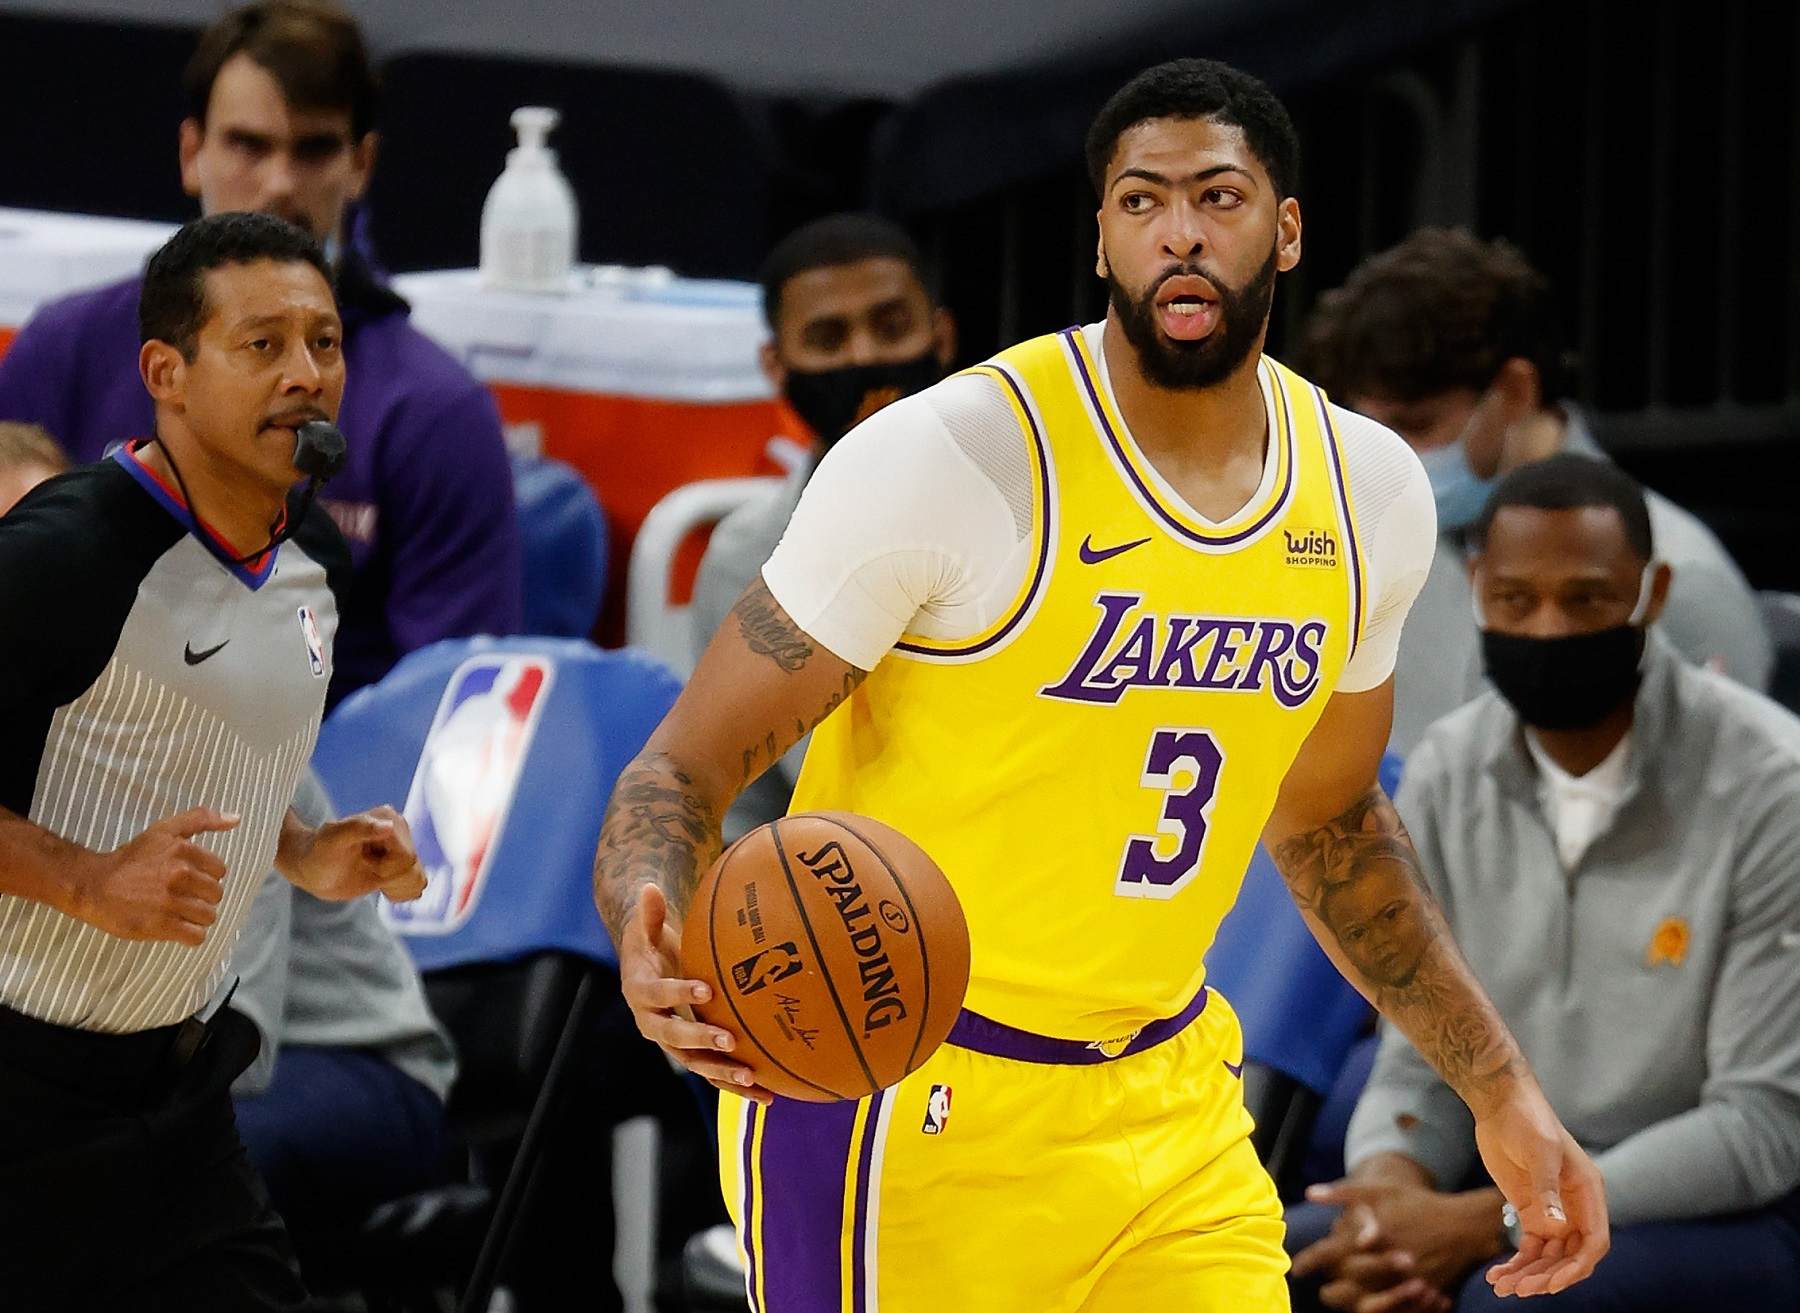 The Lakers' Anthony Davis Even Says No To His Mother When It Comes To Money